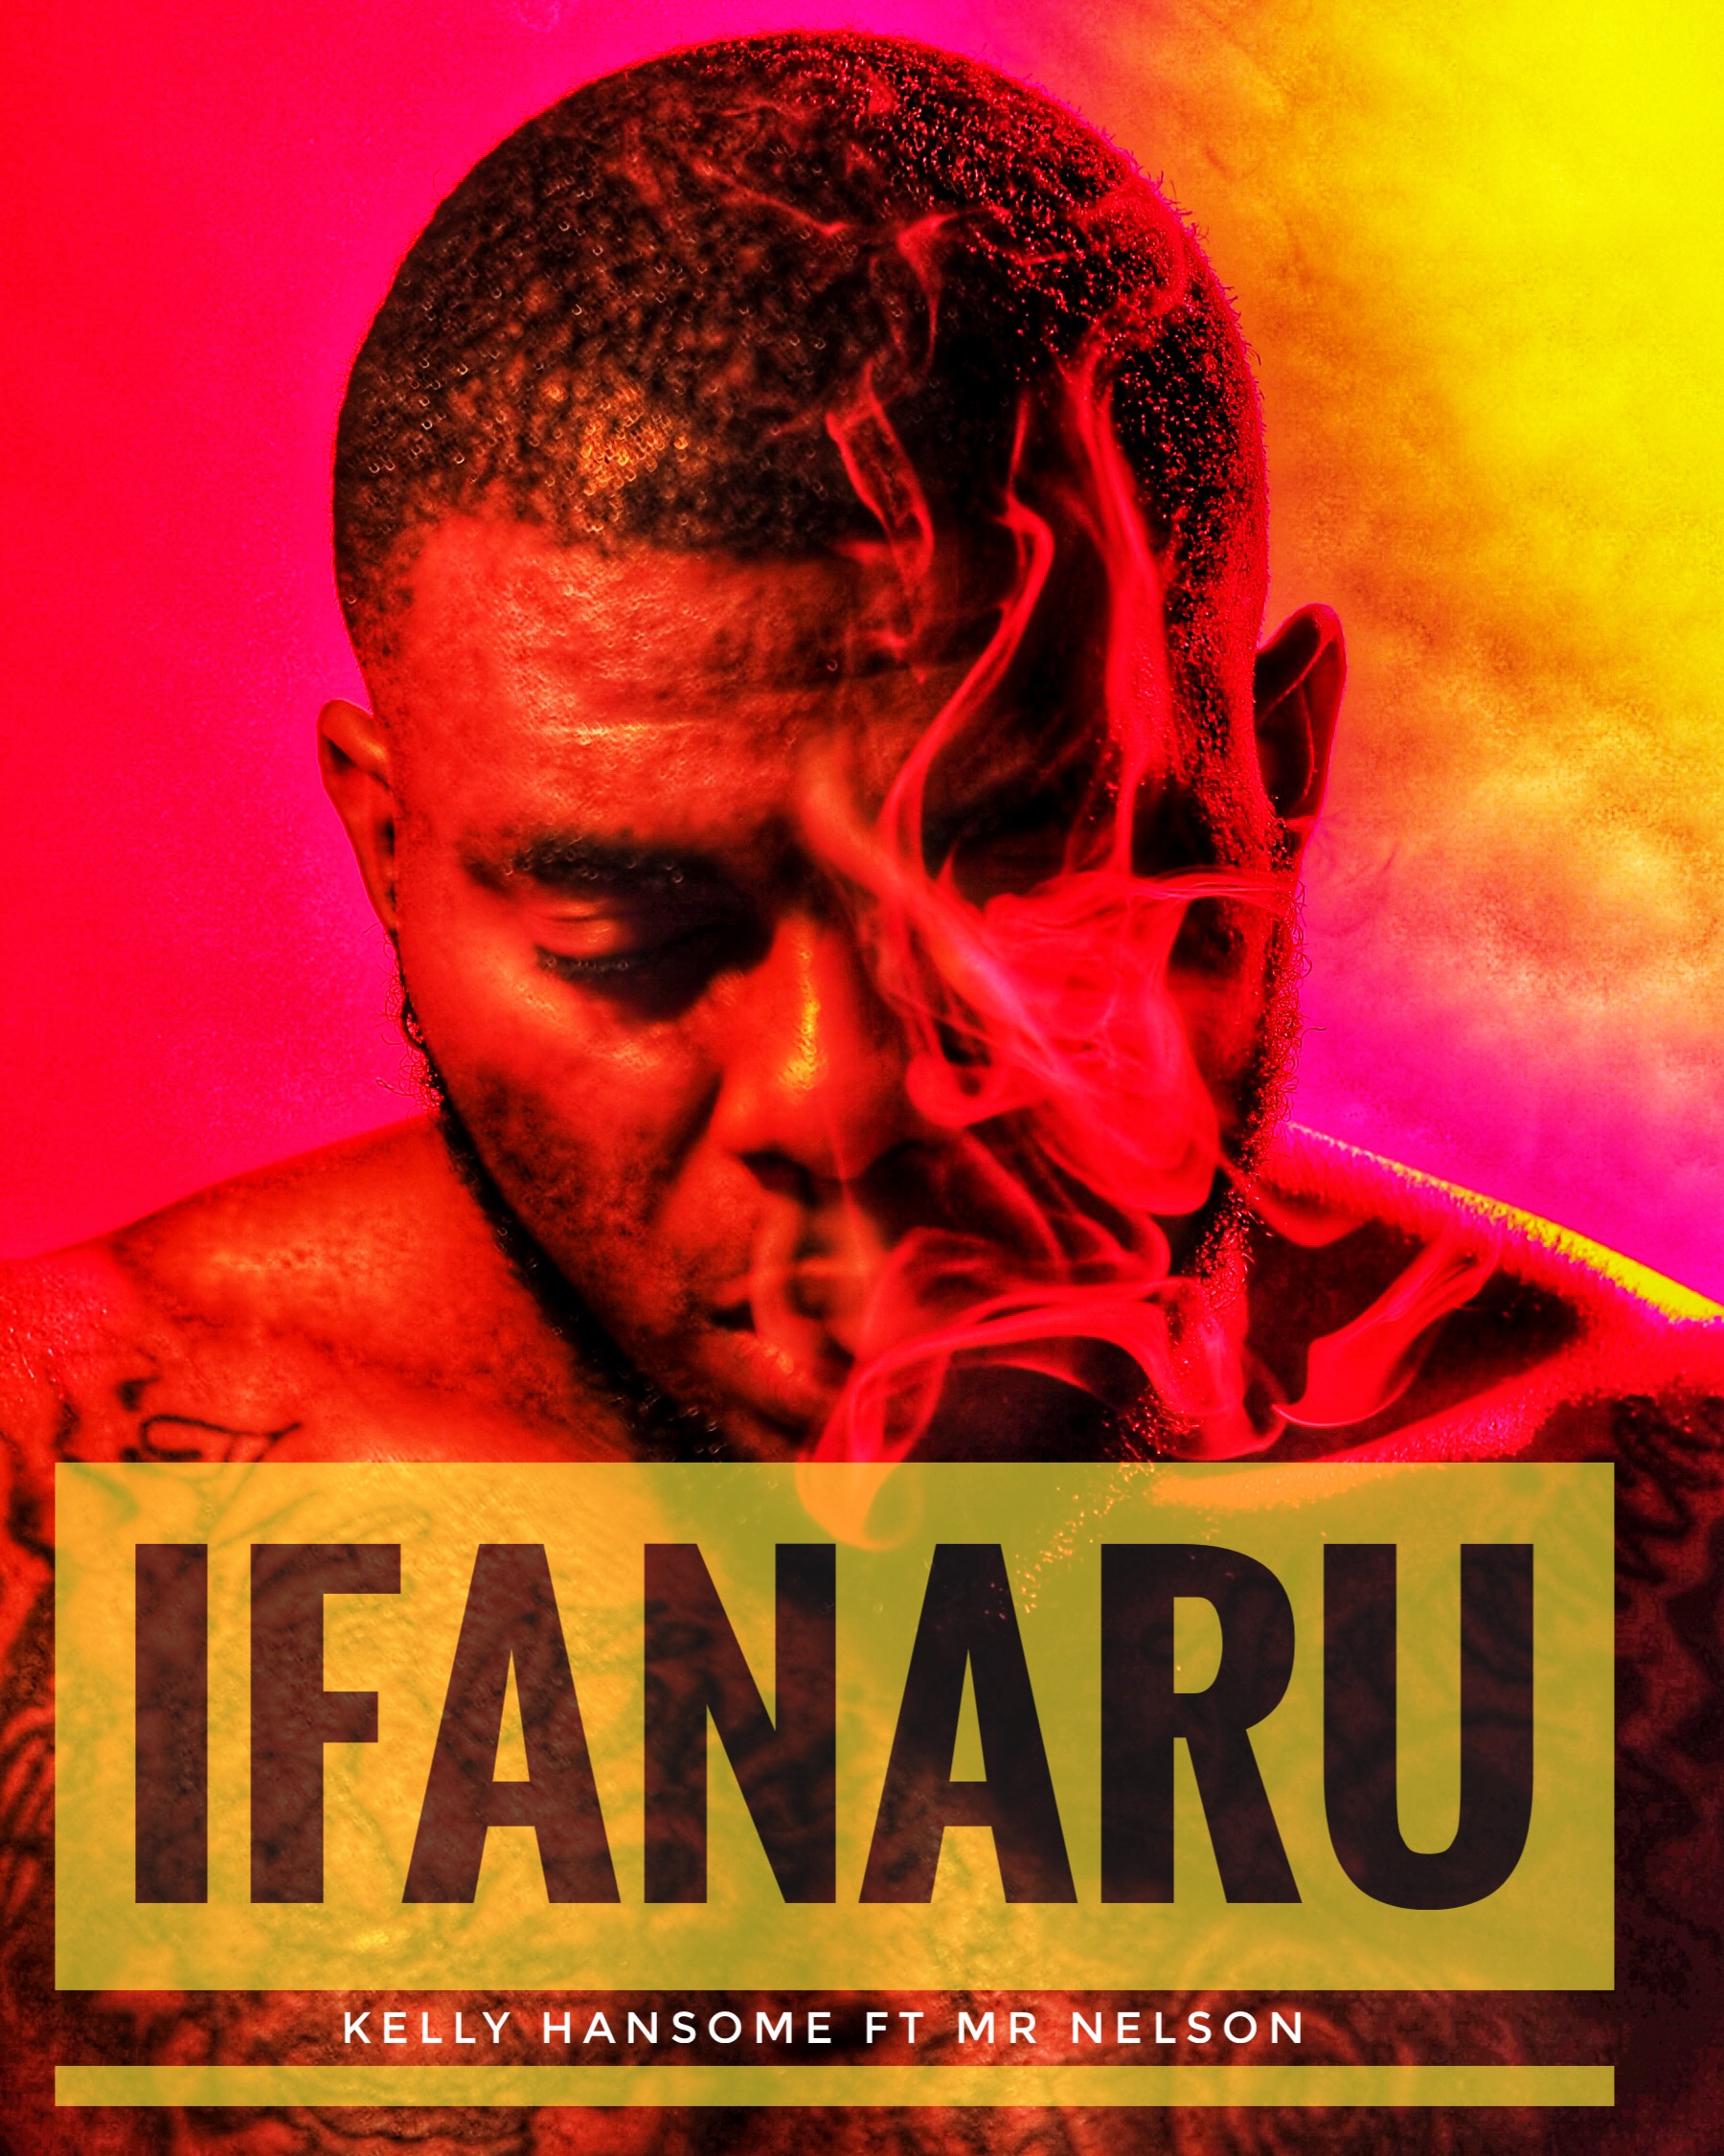 Kelly Hansome ft. Mr Nelson - Ifanaru